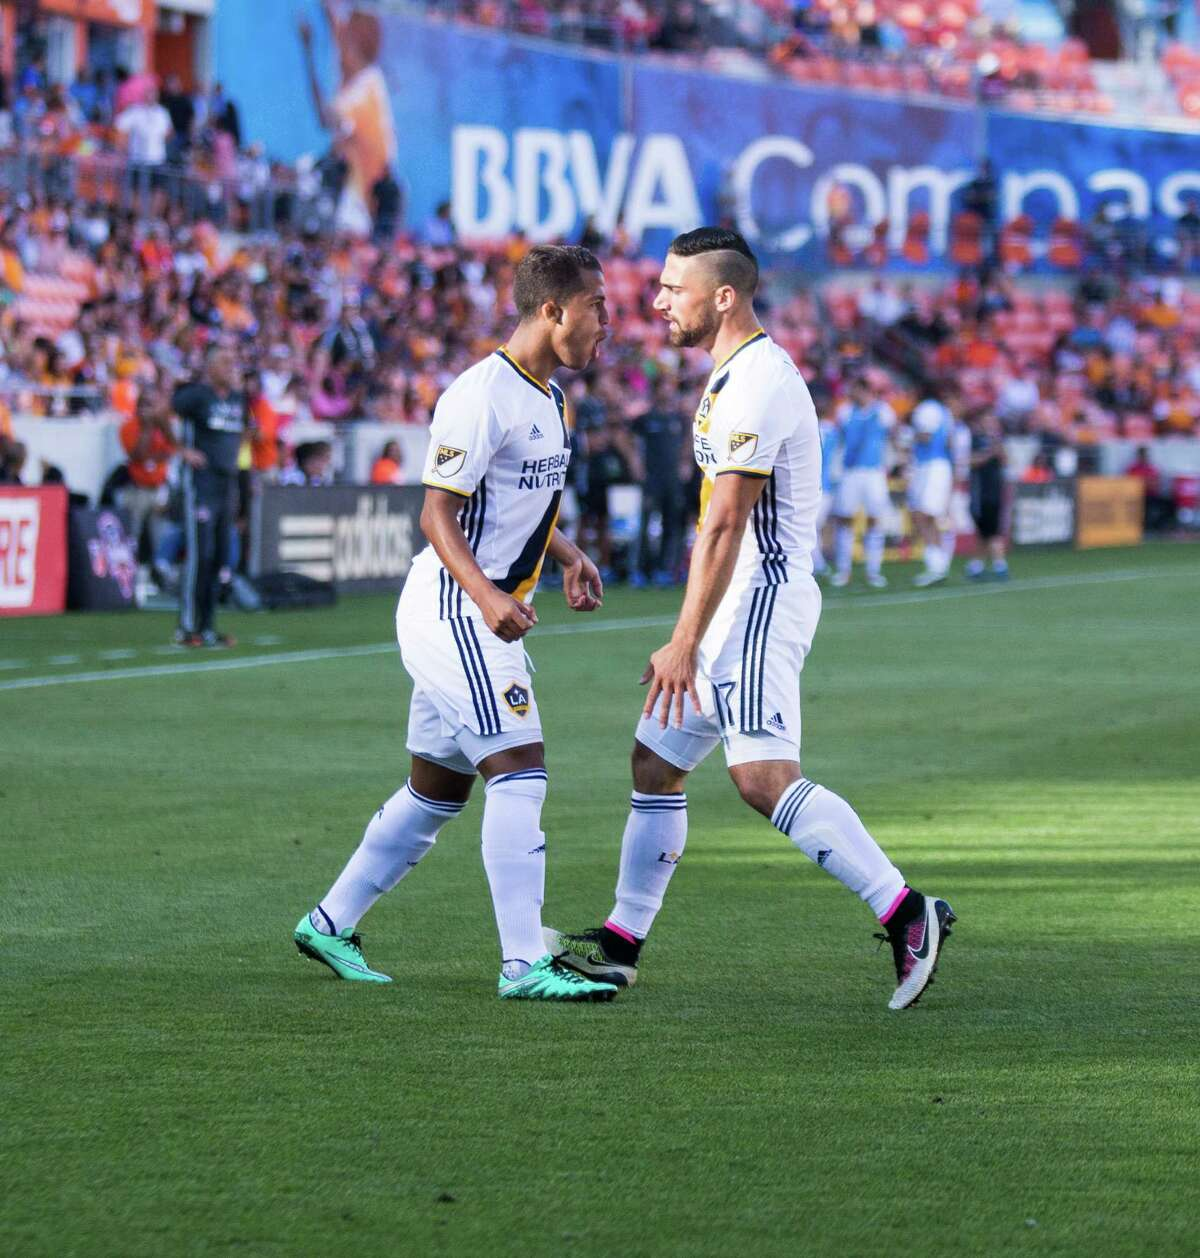 Los Angeles Galaxy forward Giovani dos Santos (10) reacting with Sebastian Lletget (17) after dos Santos scored a goal during the first half of action LA Galaxy at Dynamo during a soccer game at the BBVA Stadium, Friday, Apr. 15, 2016, in Houston. ( Juan DeLeon / For the Houston Chronicle )